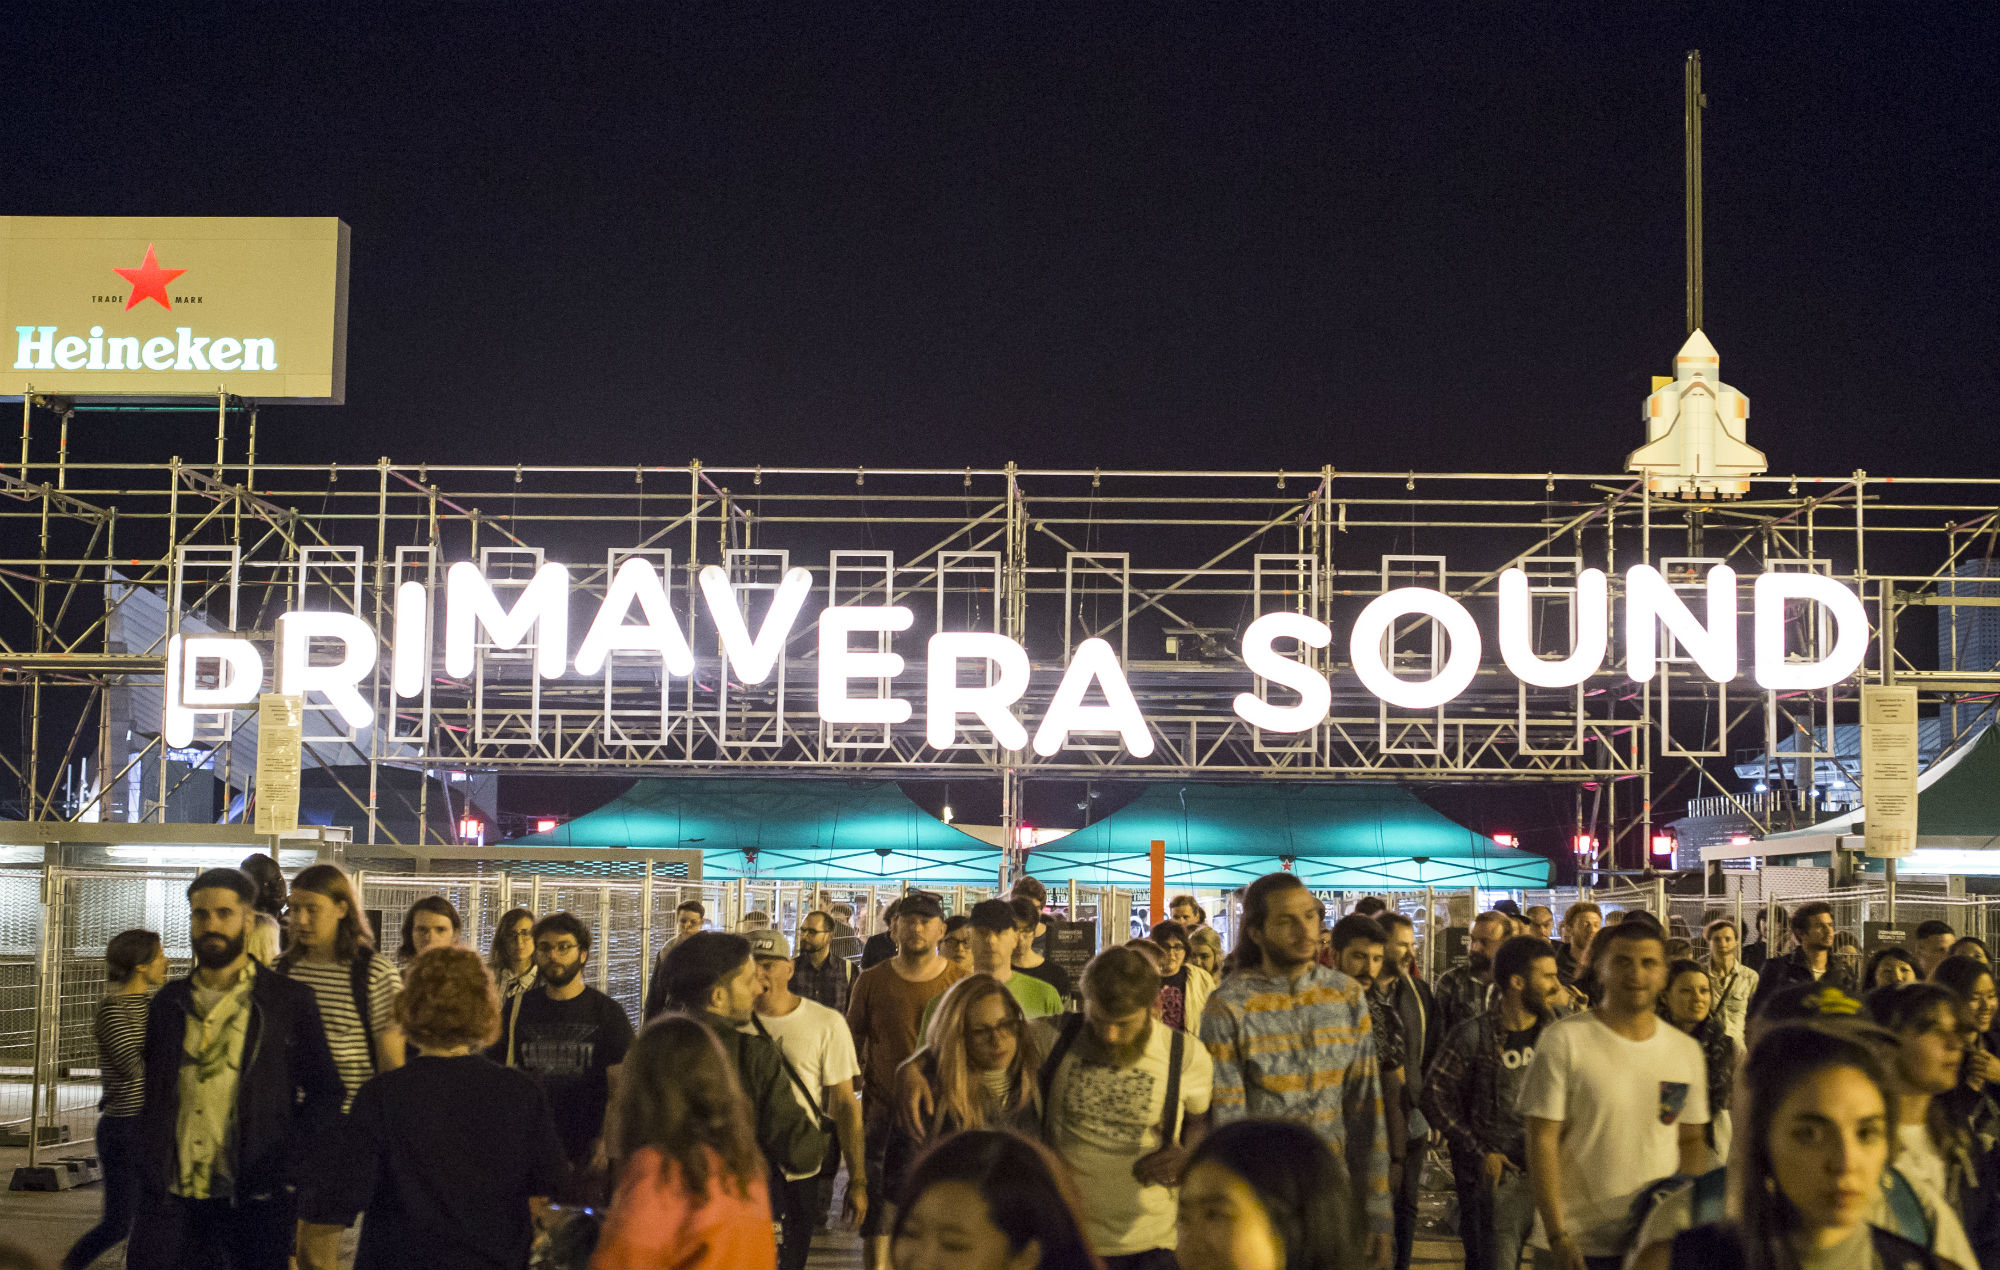 NME Festival blog: Stream standout sets from Primavera Sound 2019 right here